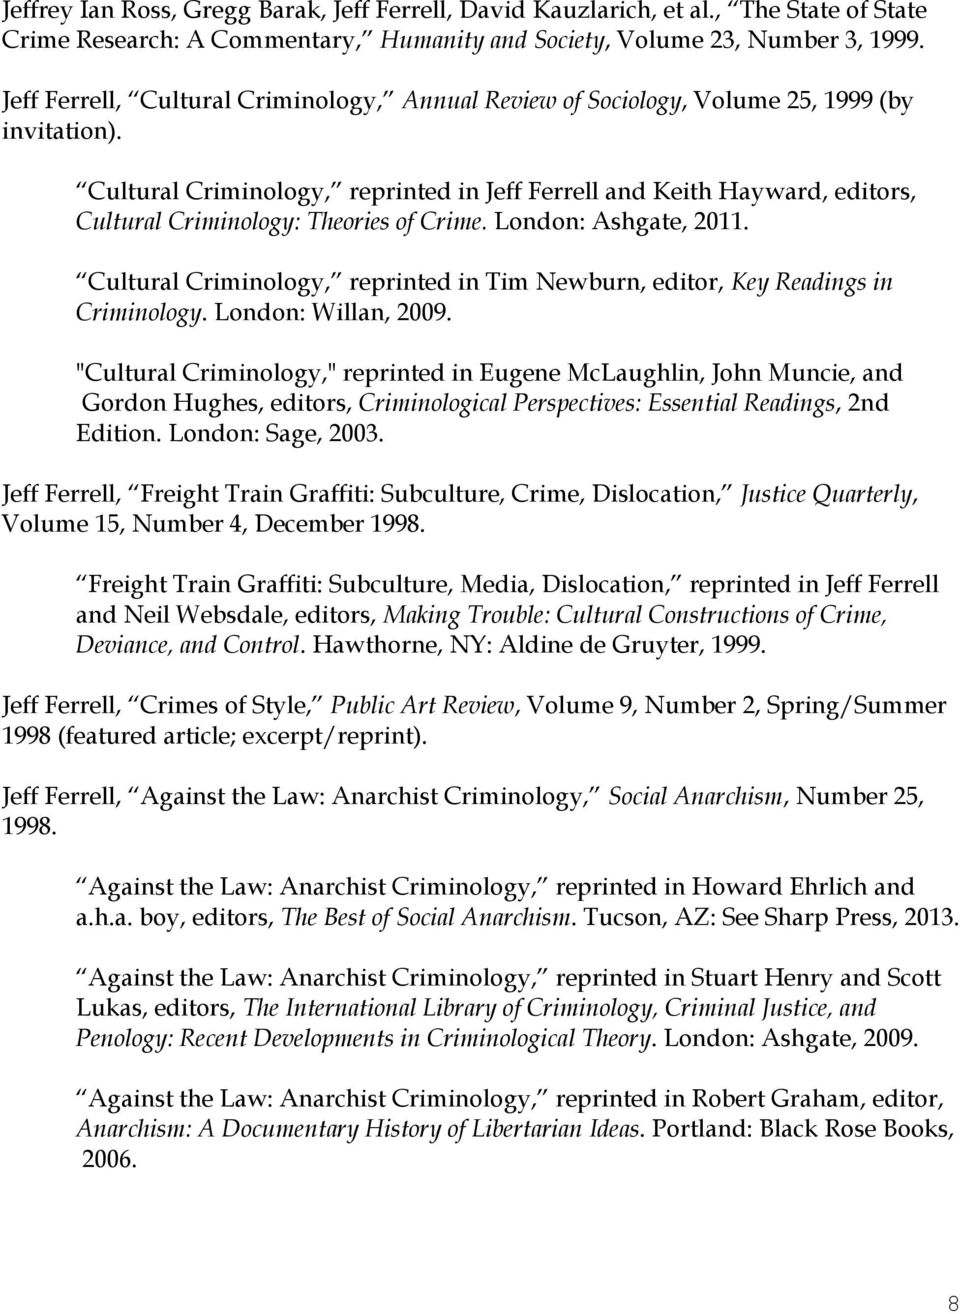 Cultural Criminology, reprinted in Jeff Ferrell and Keith Hayward, editors, Cultural Criminology: Theories of Crime. London: Ashgate, 2011.